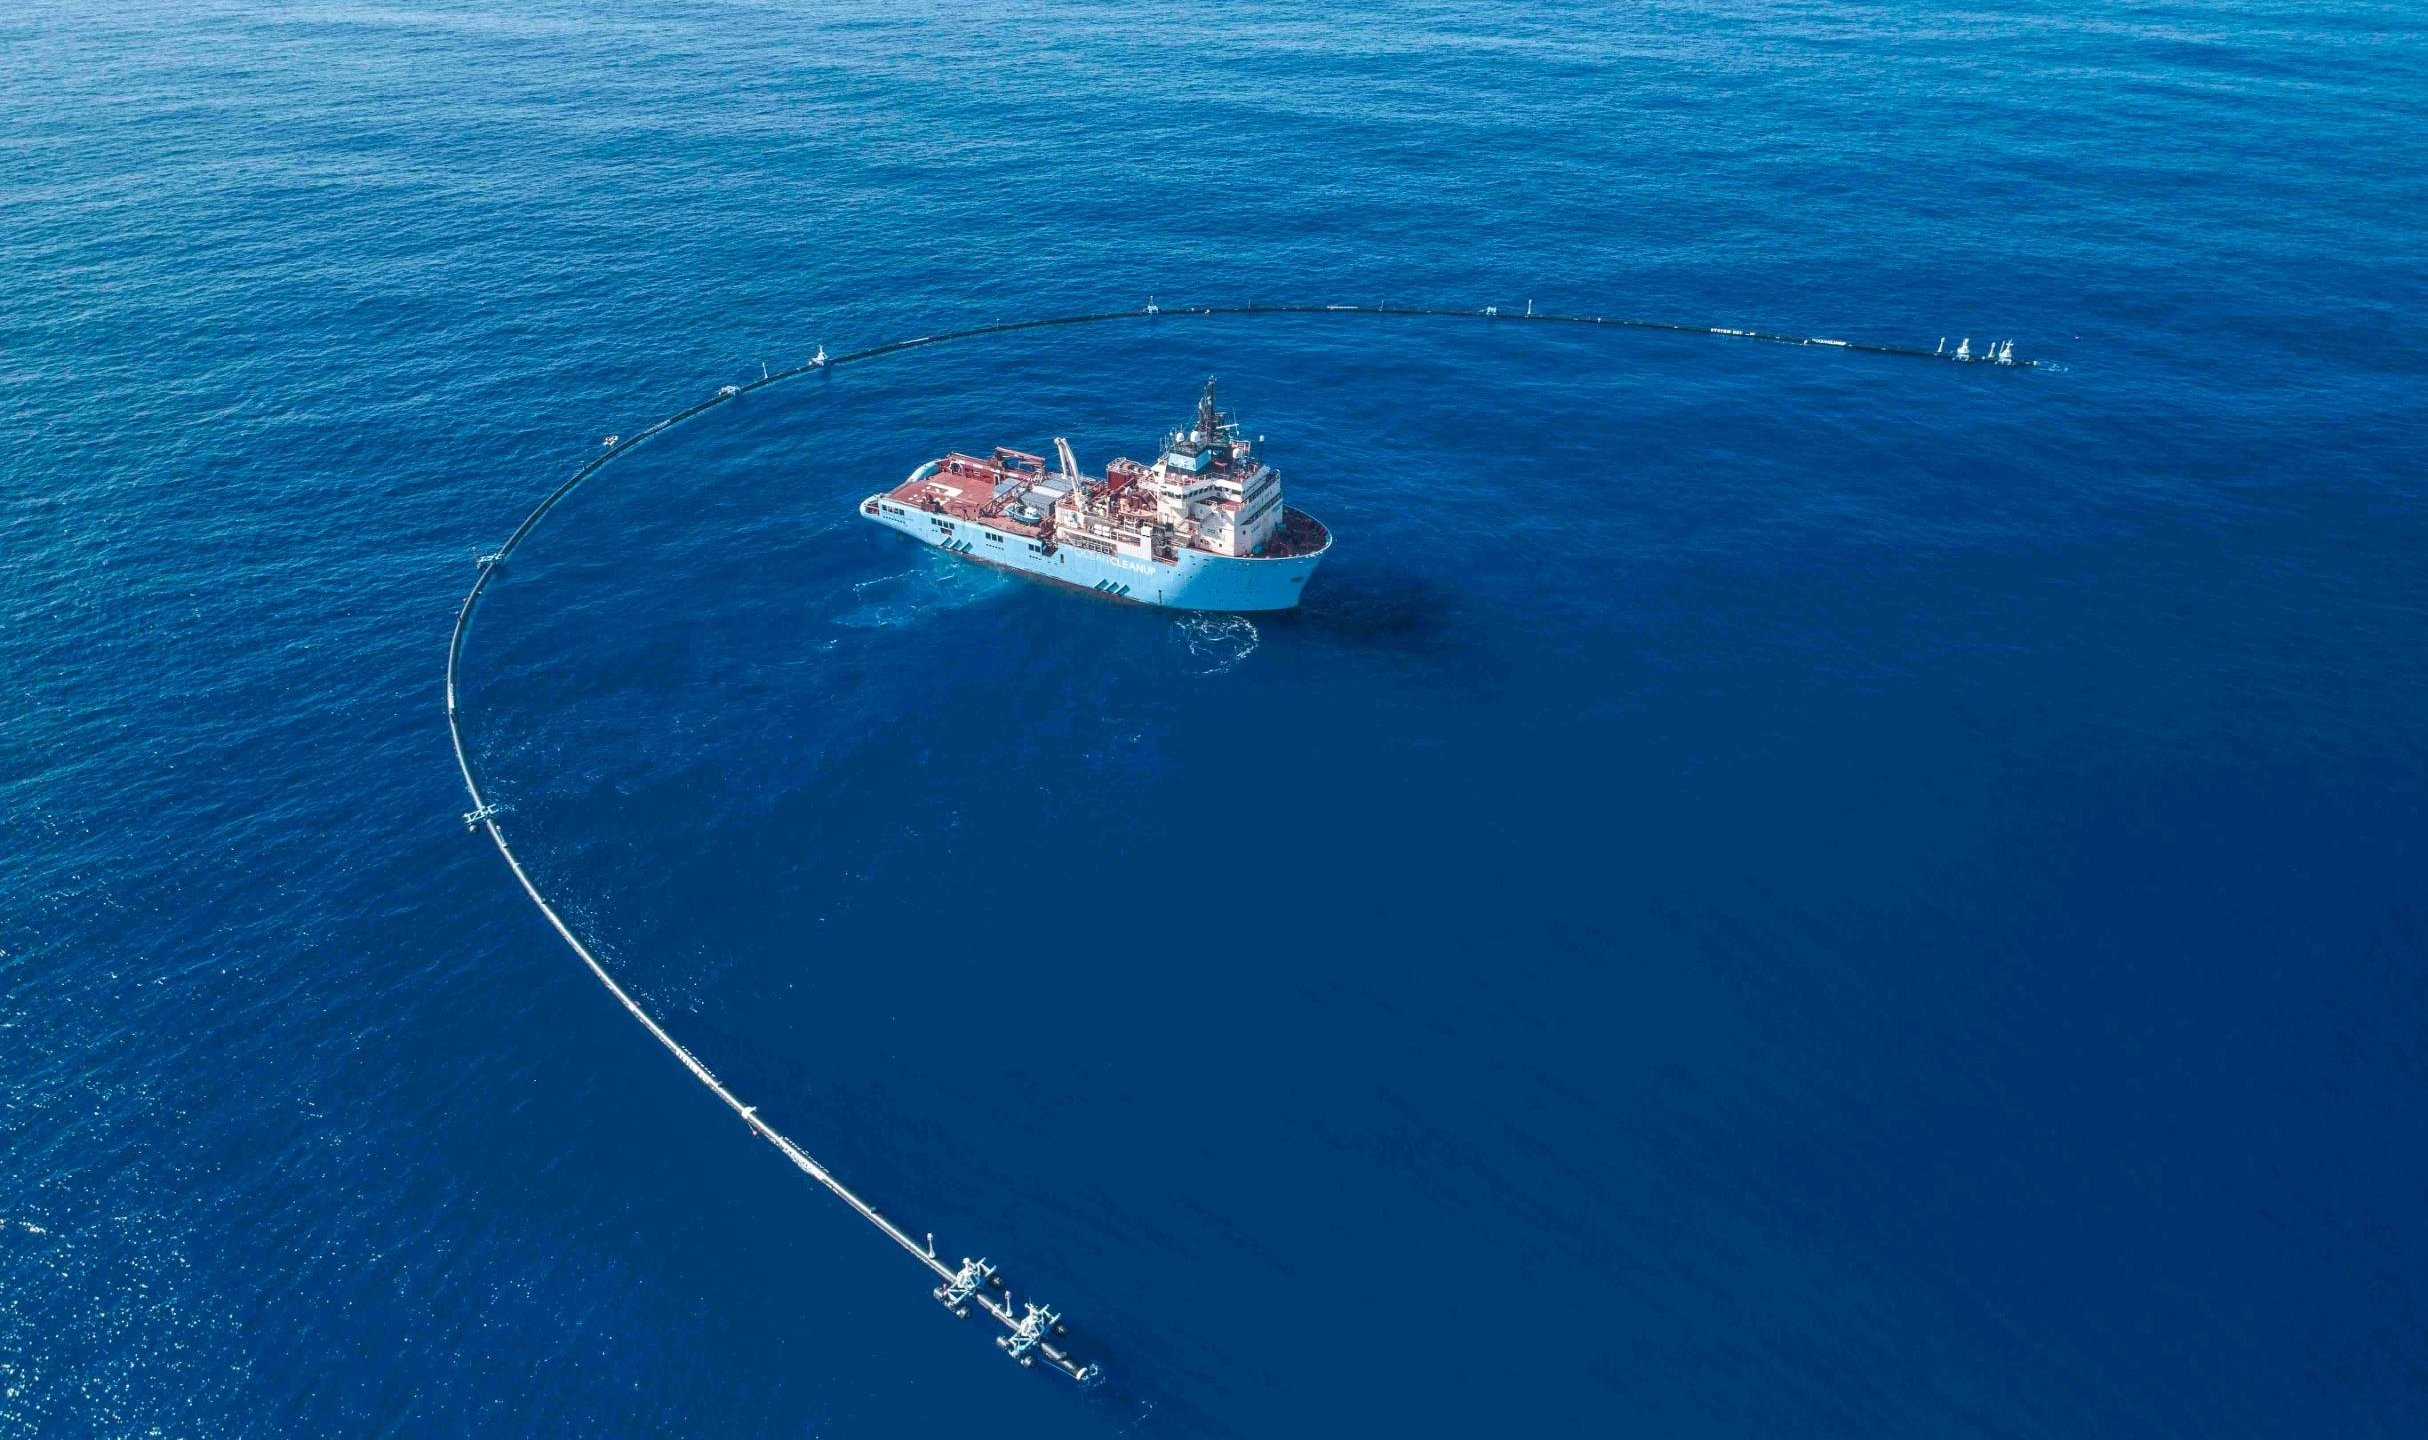 The 2,000-foot-long system created to clean up plastic pollution in the Pacific Ocean appears in an undated photo. (Credit: The Ocean Cleanup via CNN)